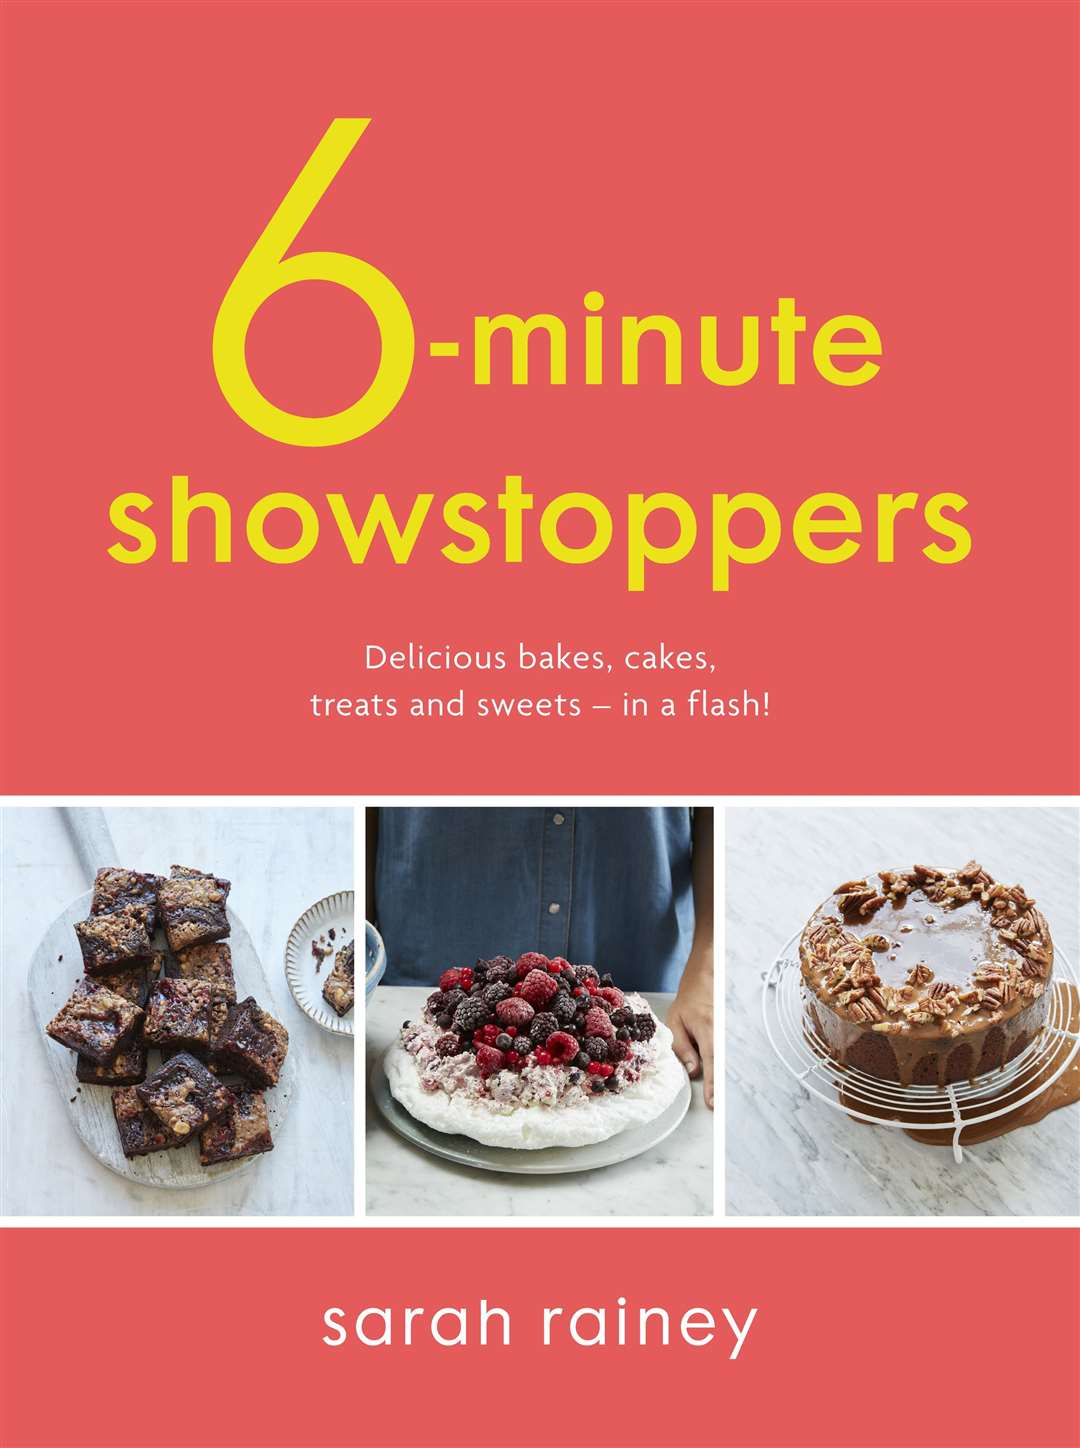 6-minute Showstoppers by Sarah Rainey.